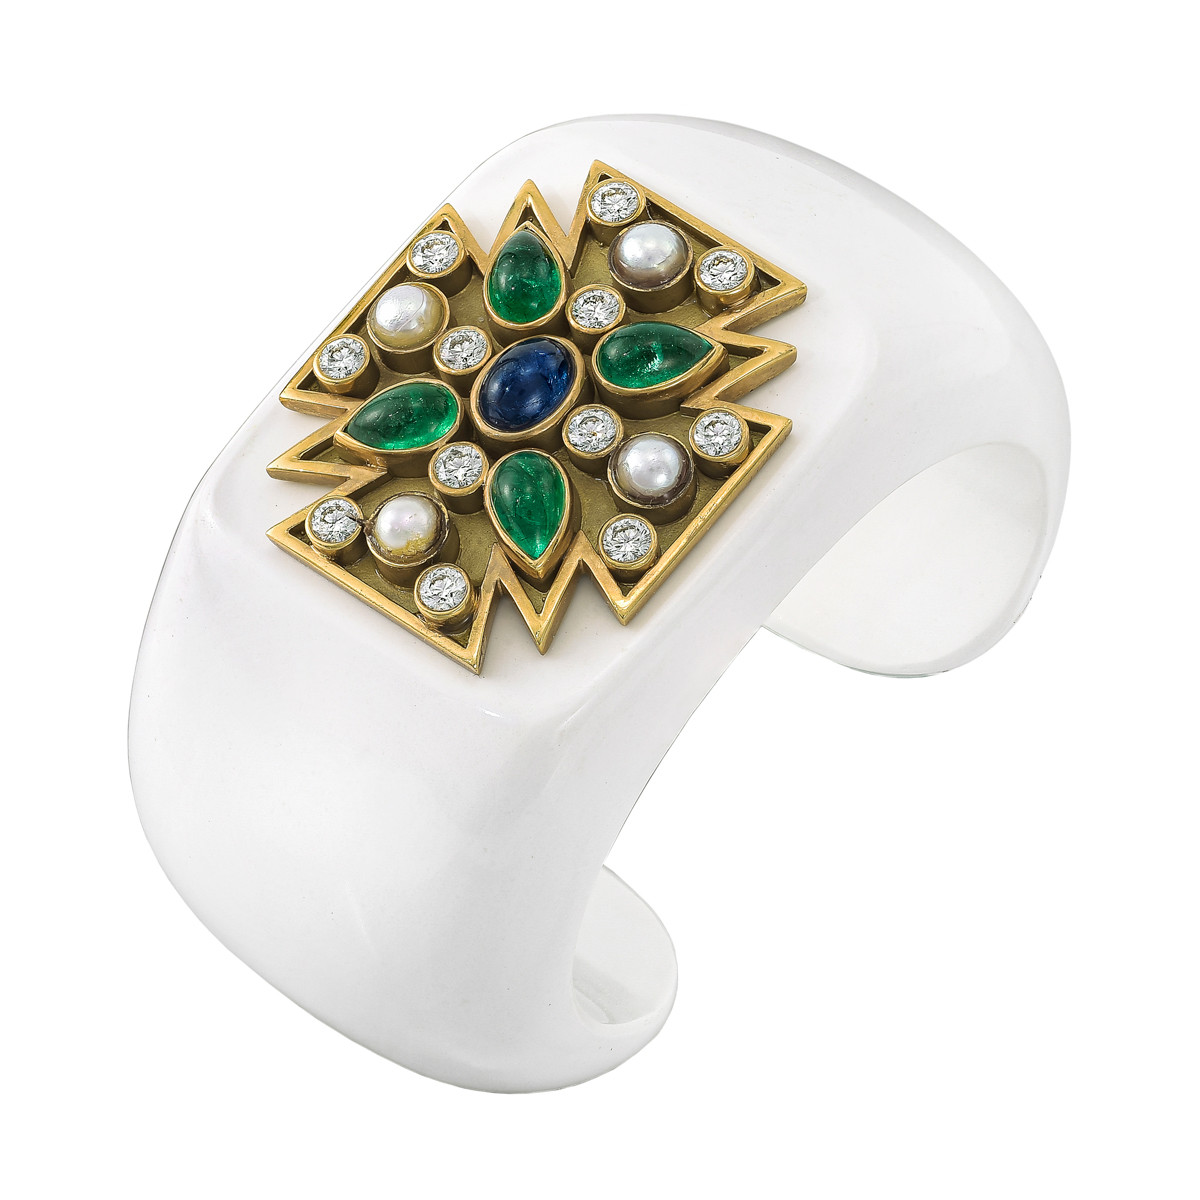 "Cocholong, 18k Gold & Gem-Set ""Maltese Cross"" Cuff"